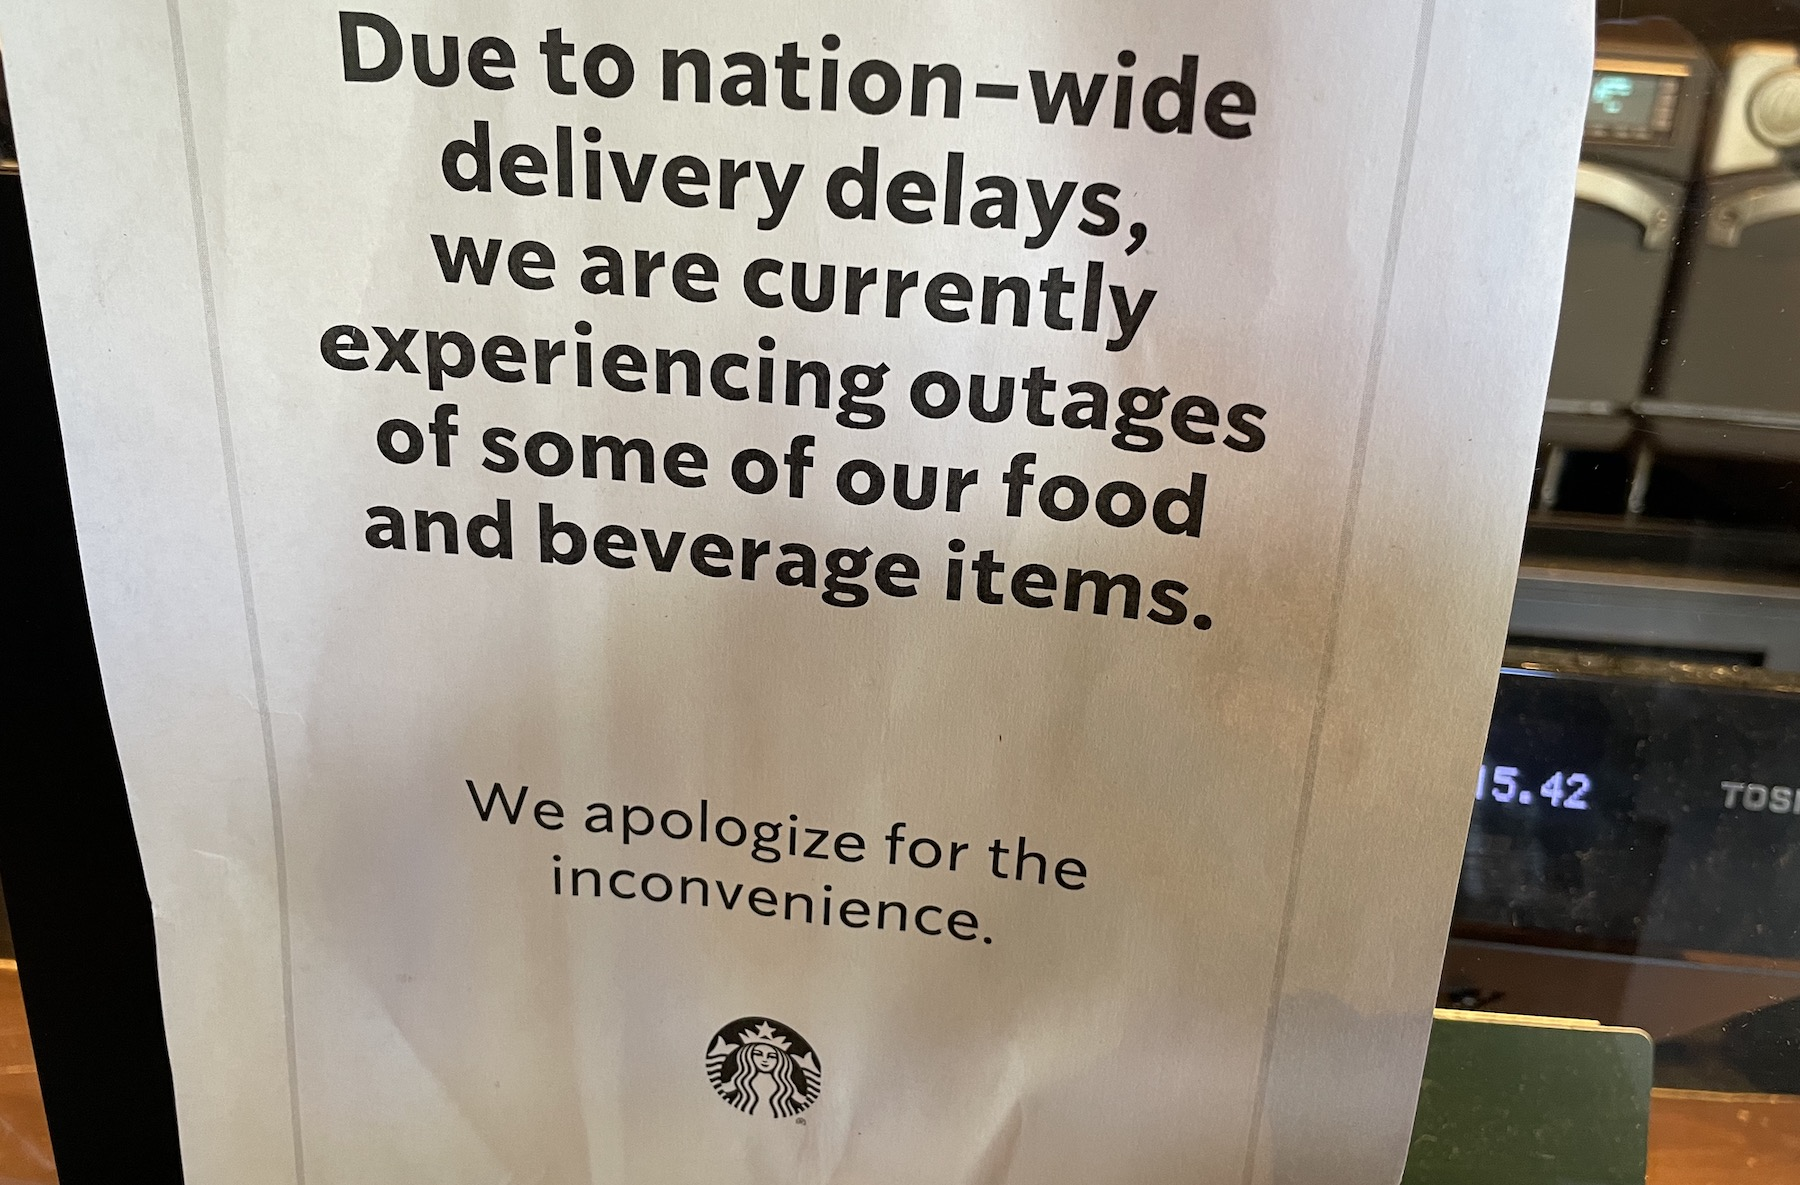 Taco Bell and Starbucks warn about shortages